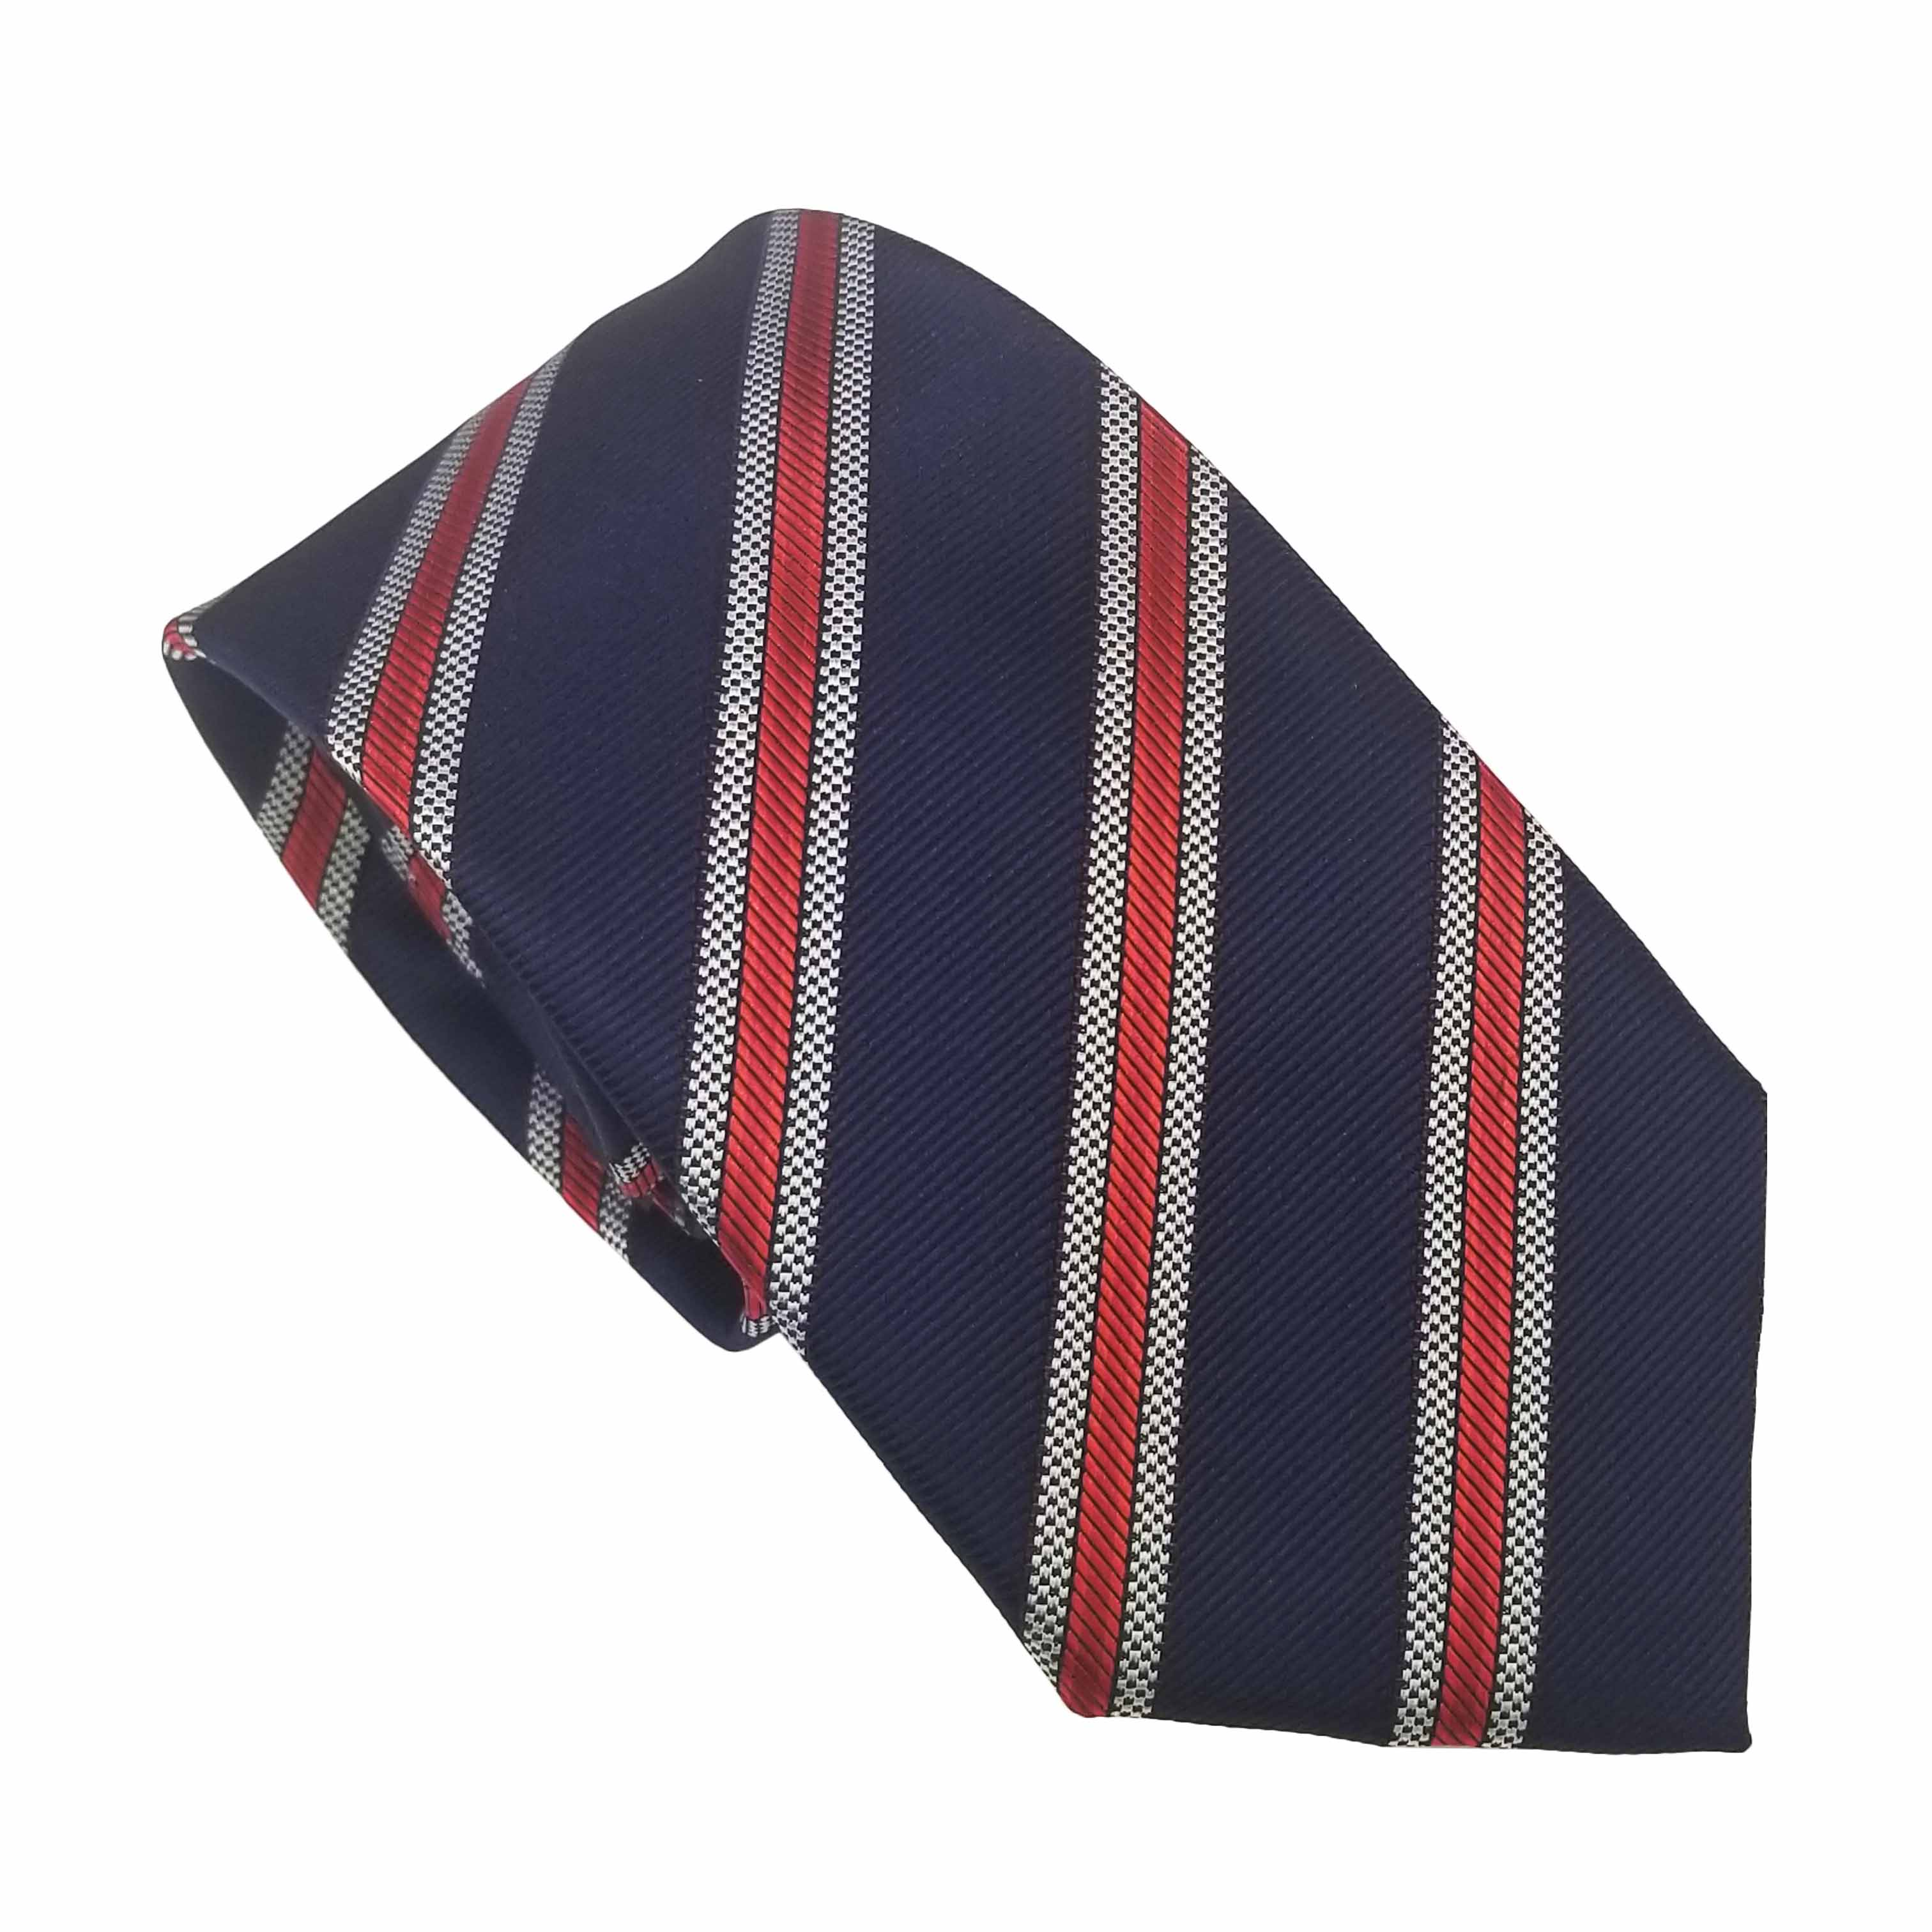 Uniform Tie Navy With White And Red Diagonal Stripe